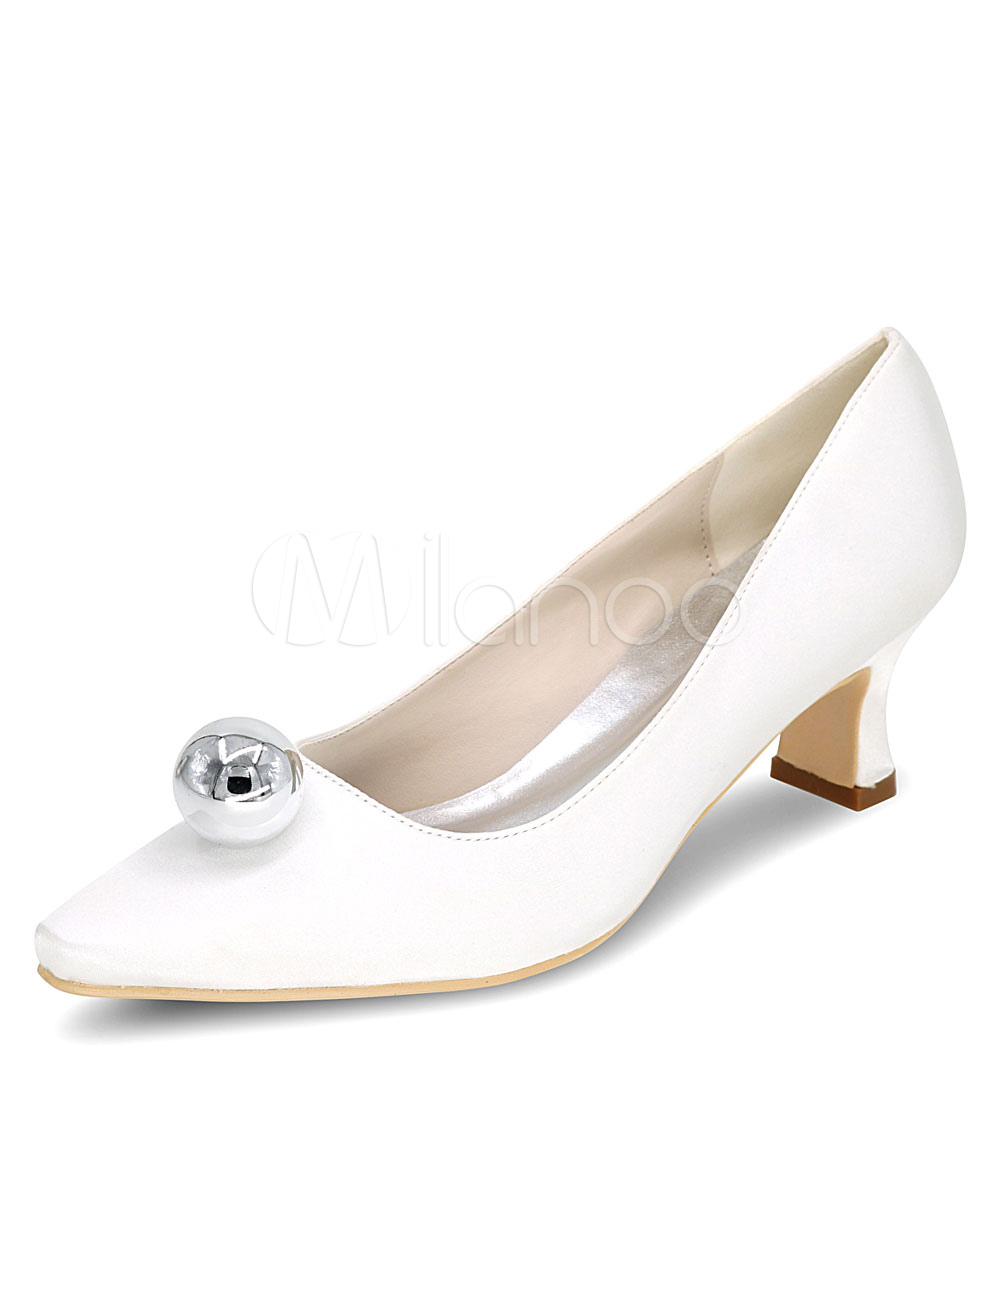 White Wedding Shoes Chunky Heel Pearls Satin Slip On Bridal Shoes